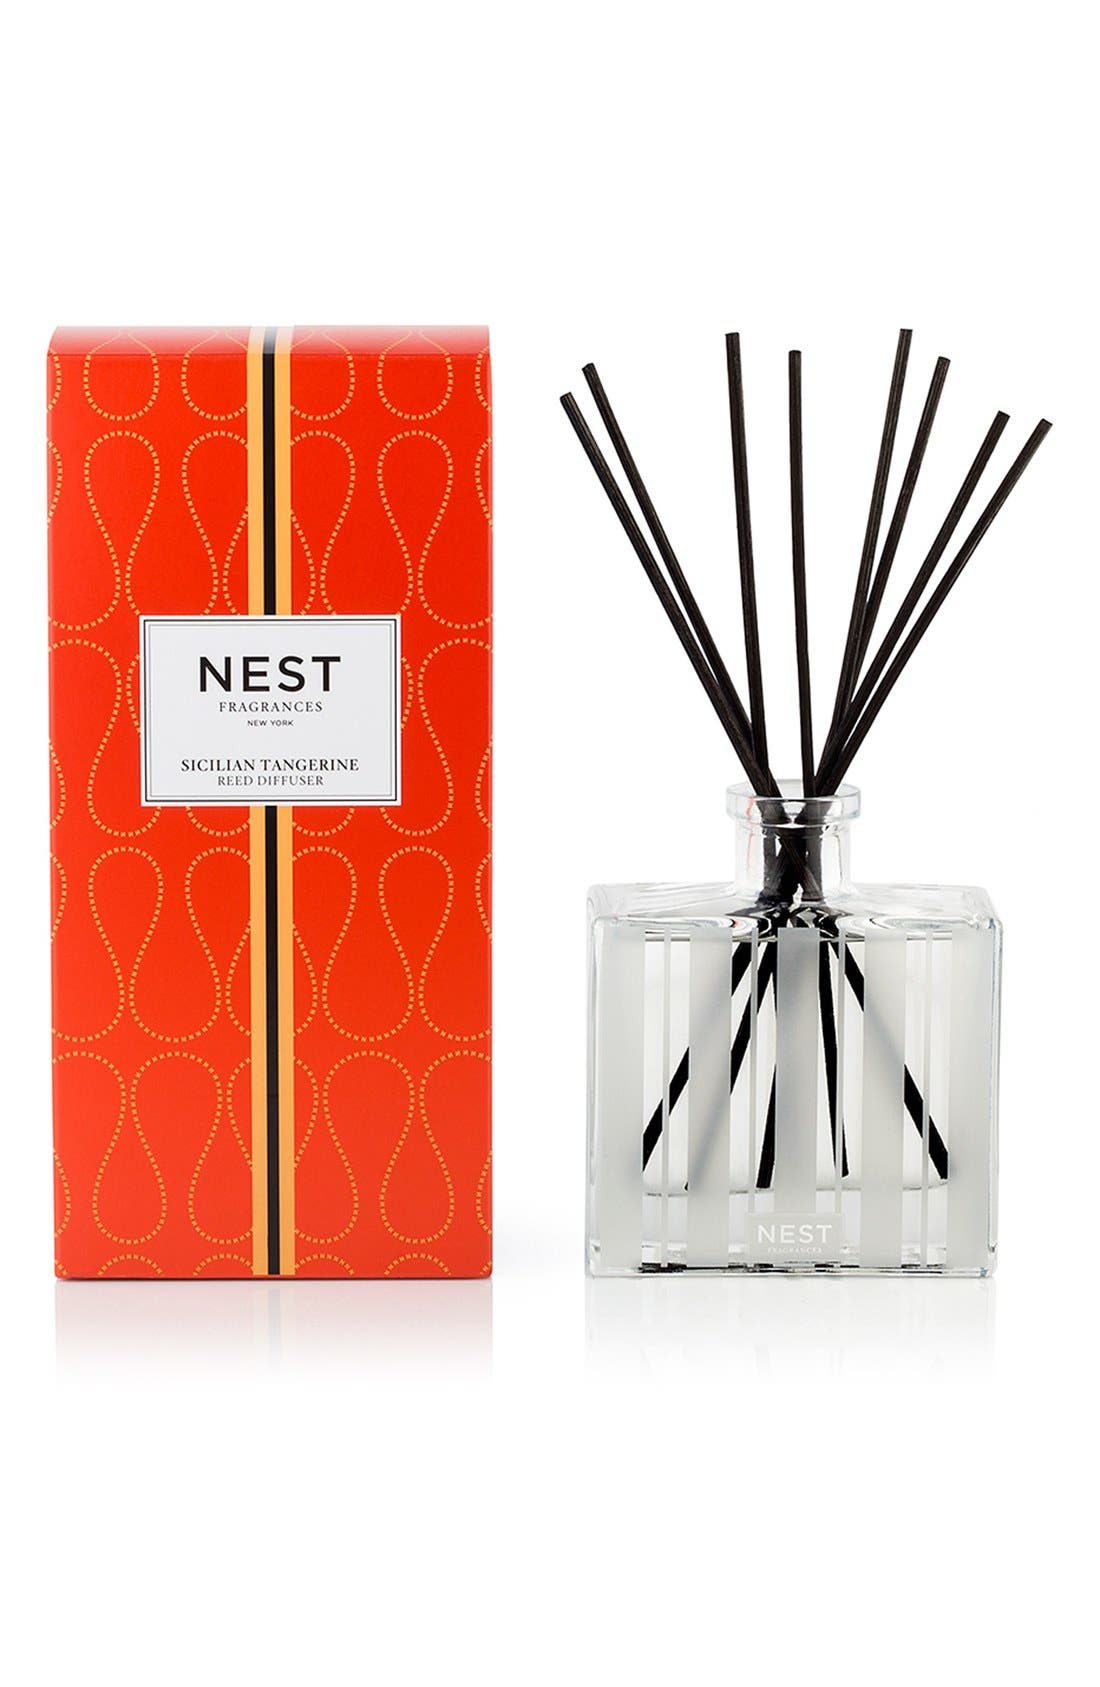 NEST FRAGRANCES 'Sicilian Tangerine' Reed Diffuser